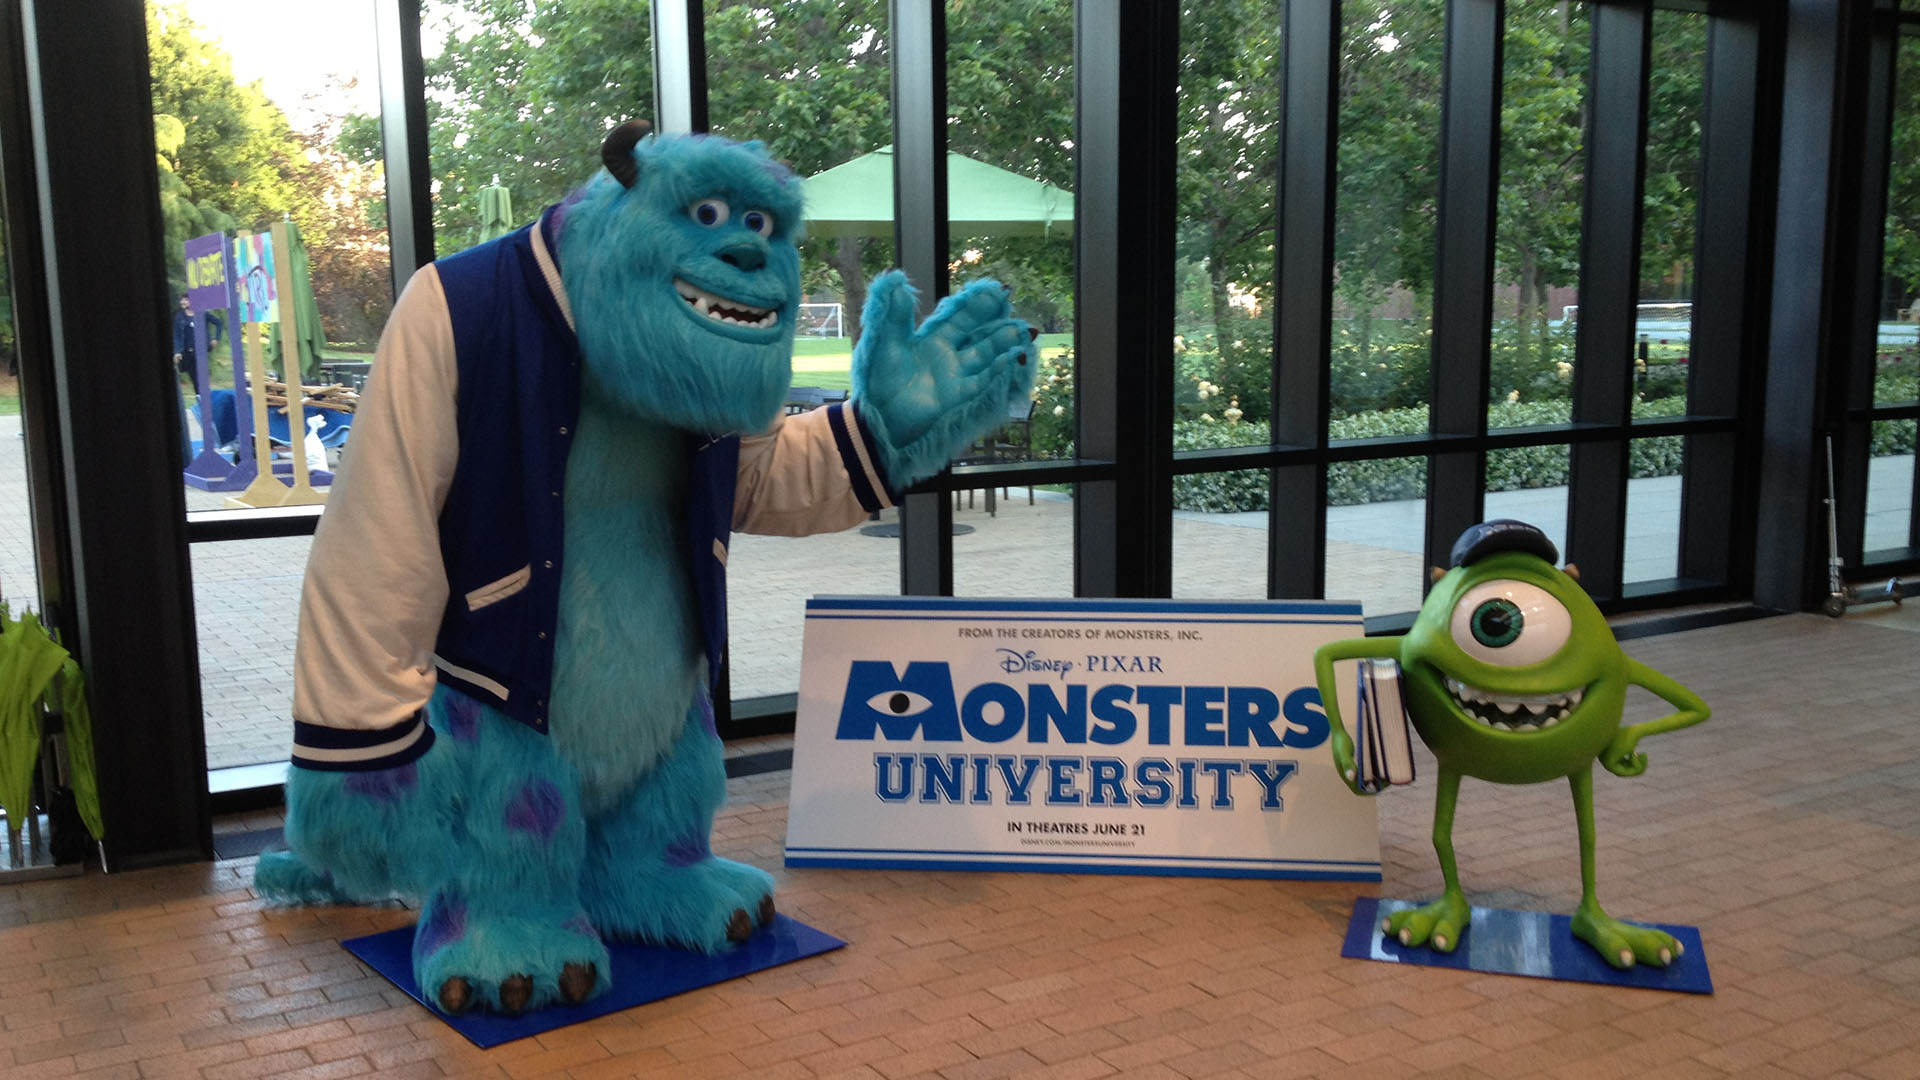 Mike and Sully at Pixar. Monsters University Behind the scenes